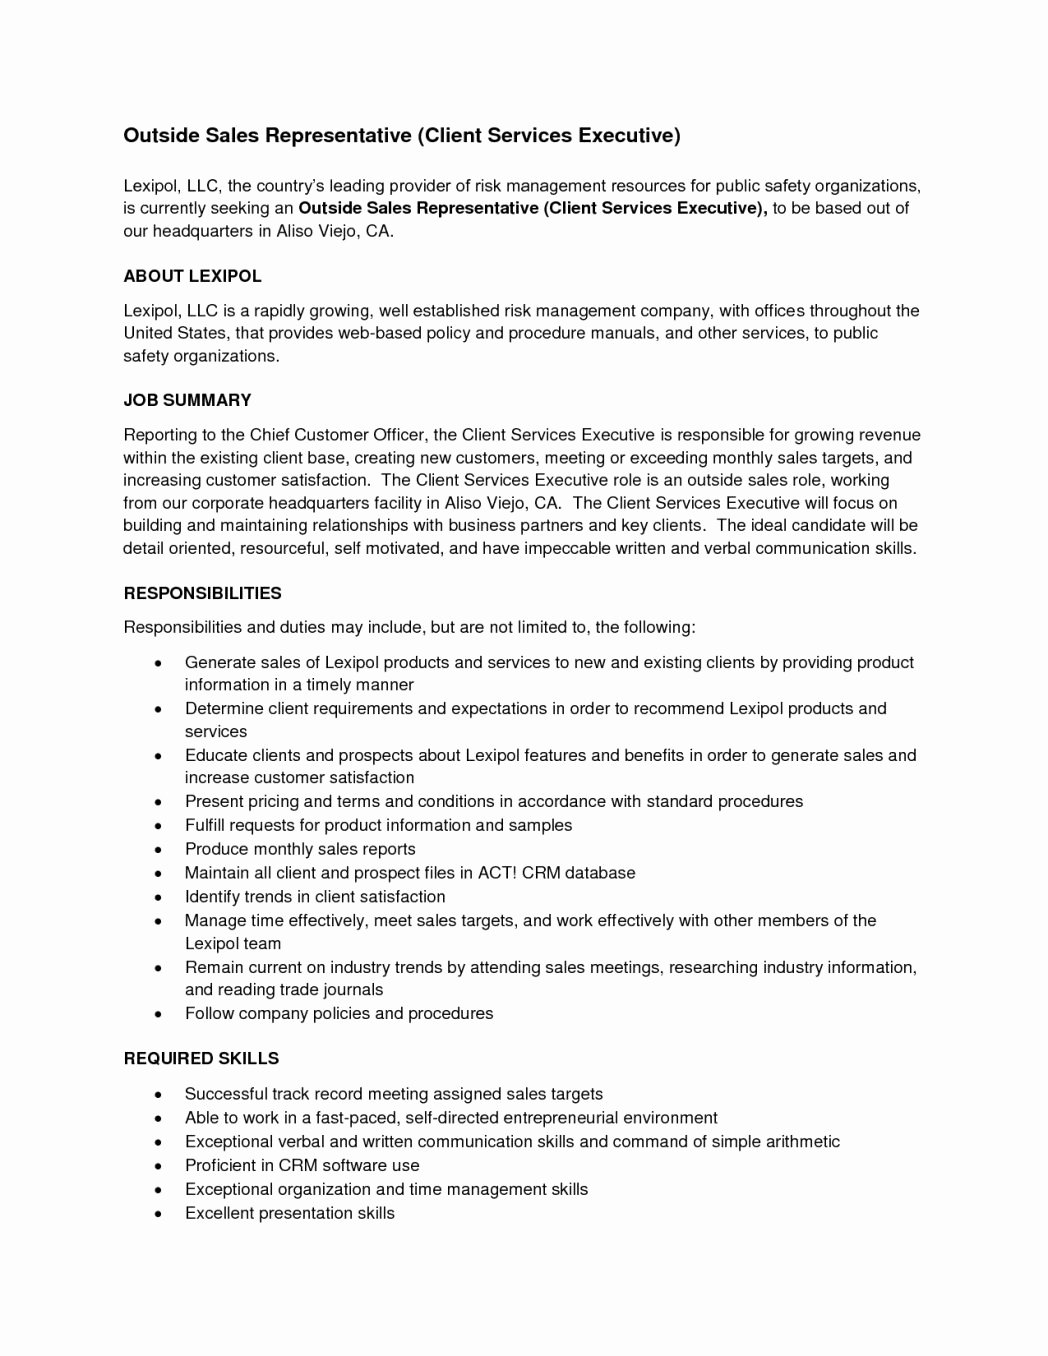 Inside Sales Rep Resume Skills